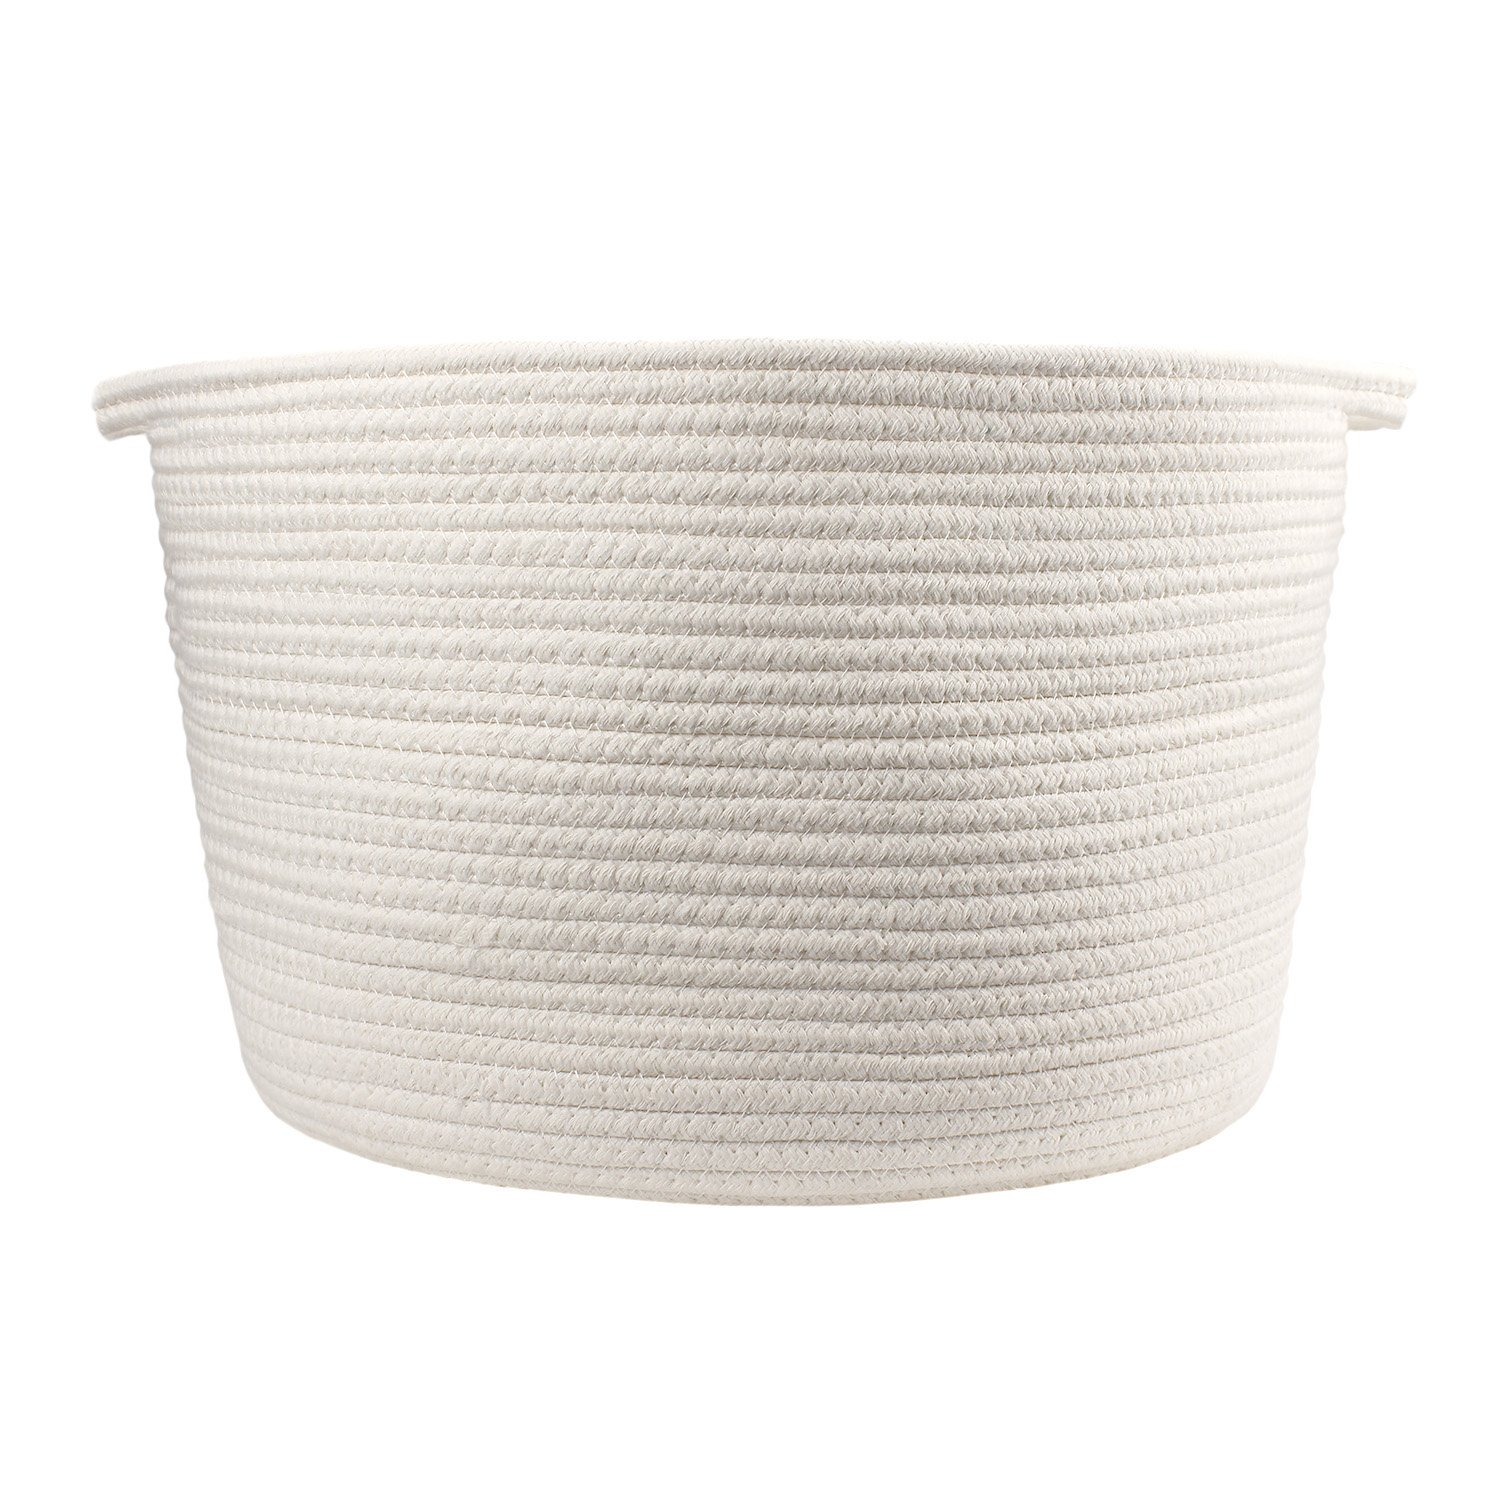 """Orino Cotton Rope Storage Baskets with Handles, soft durable Laundry Baskets Nursery Hamper Organizer for kids' Toys Home Decor Blanket basket (15""""x10"""", Large, Off White)"""